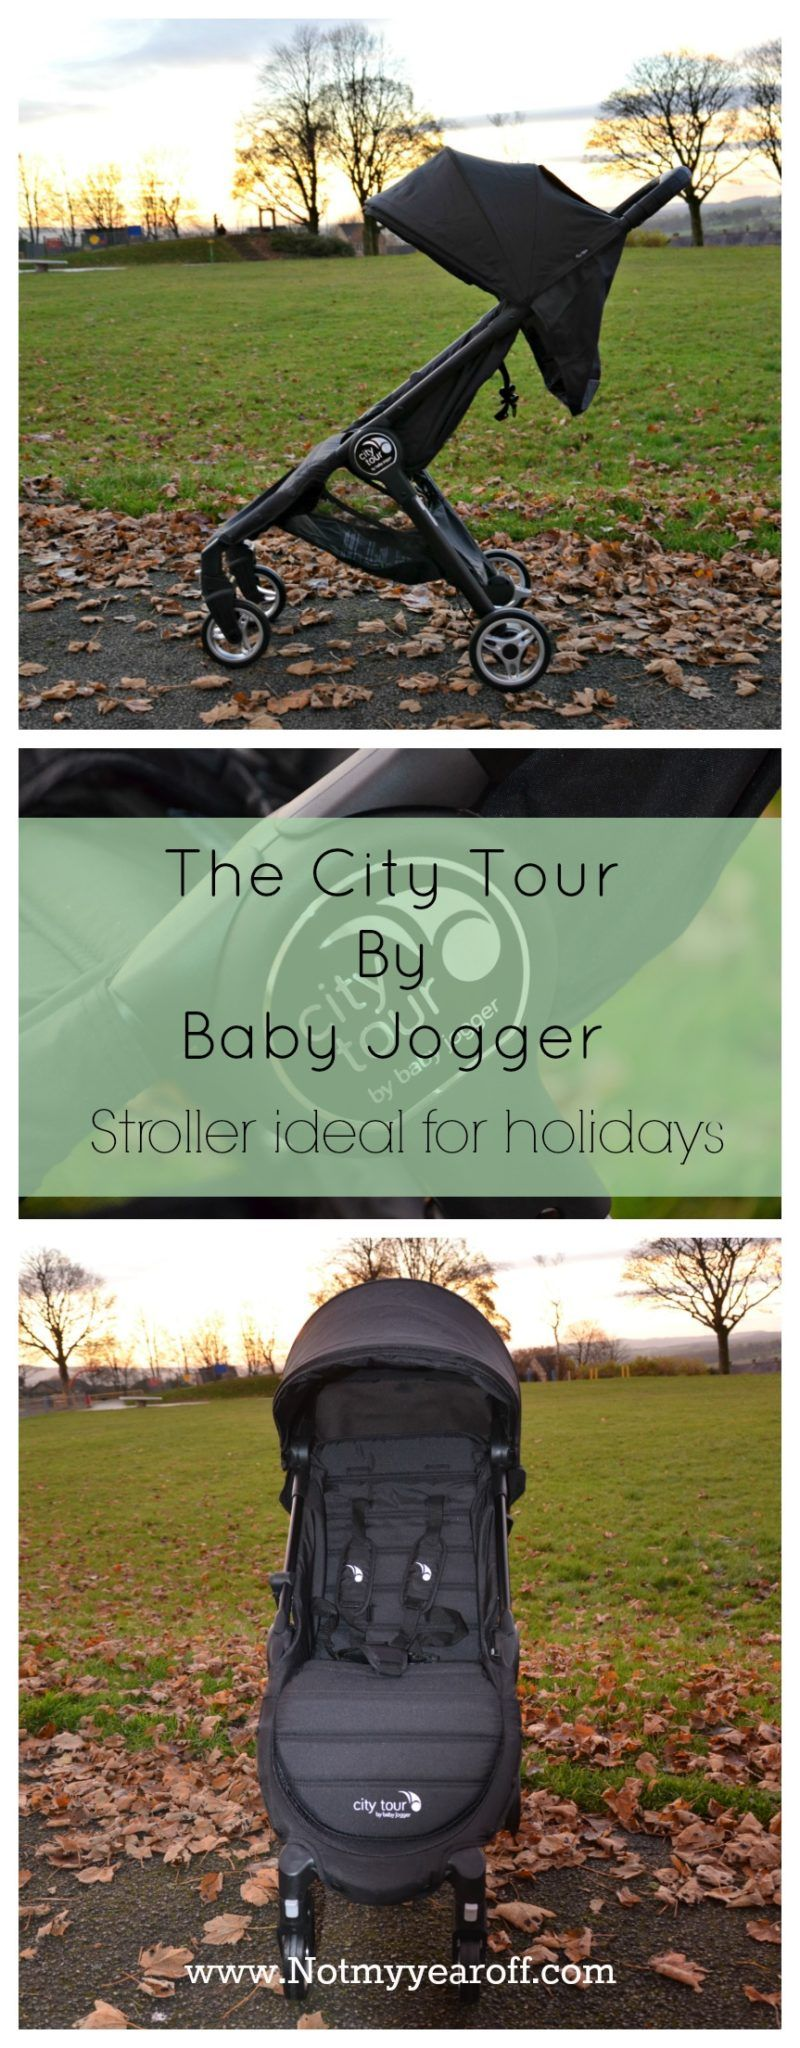 The City Tour by Baby Jogger review and favourite features